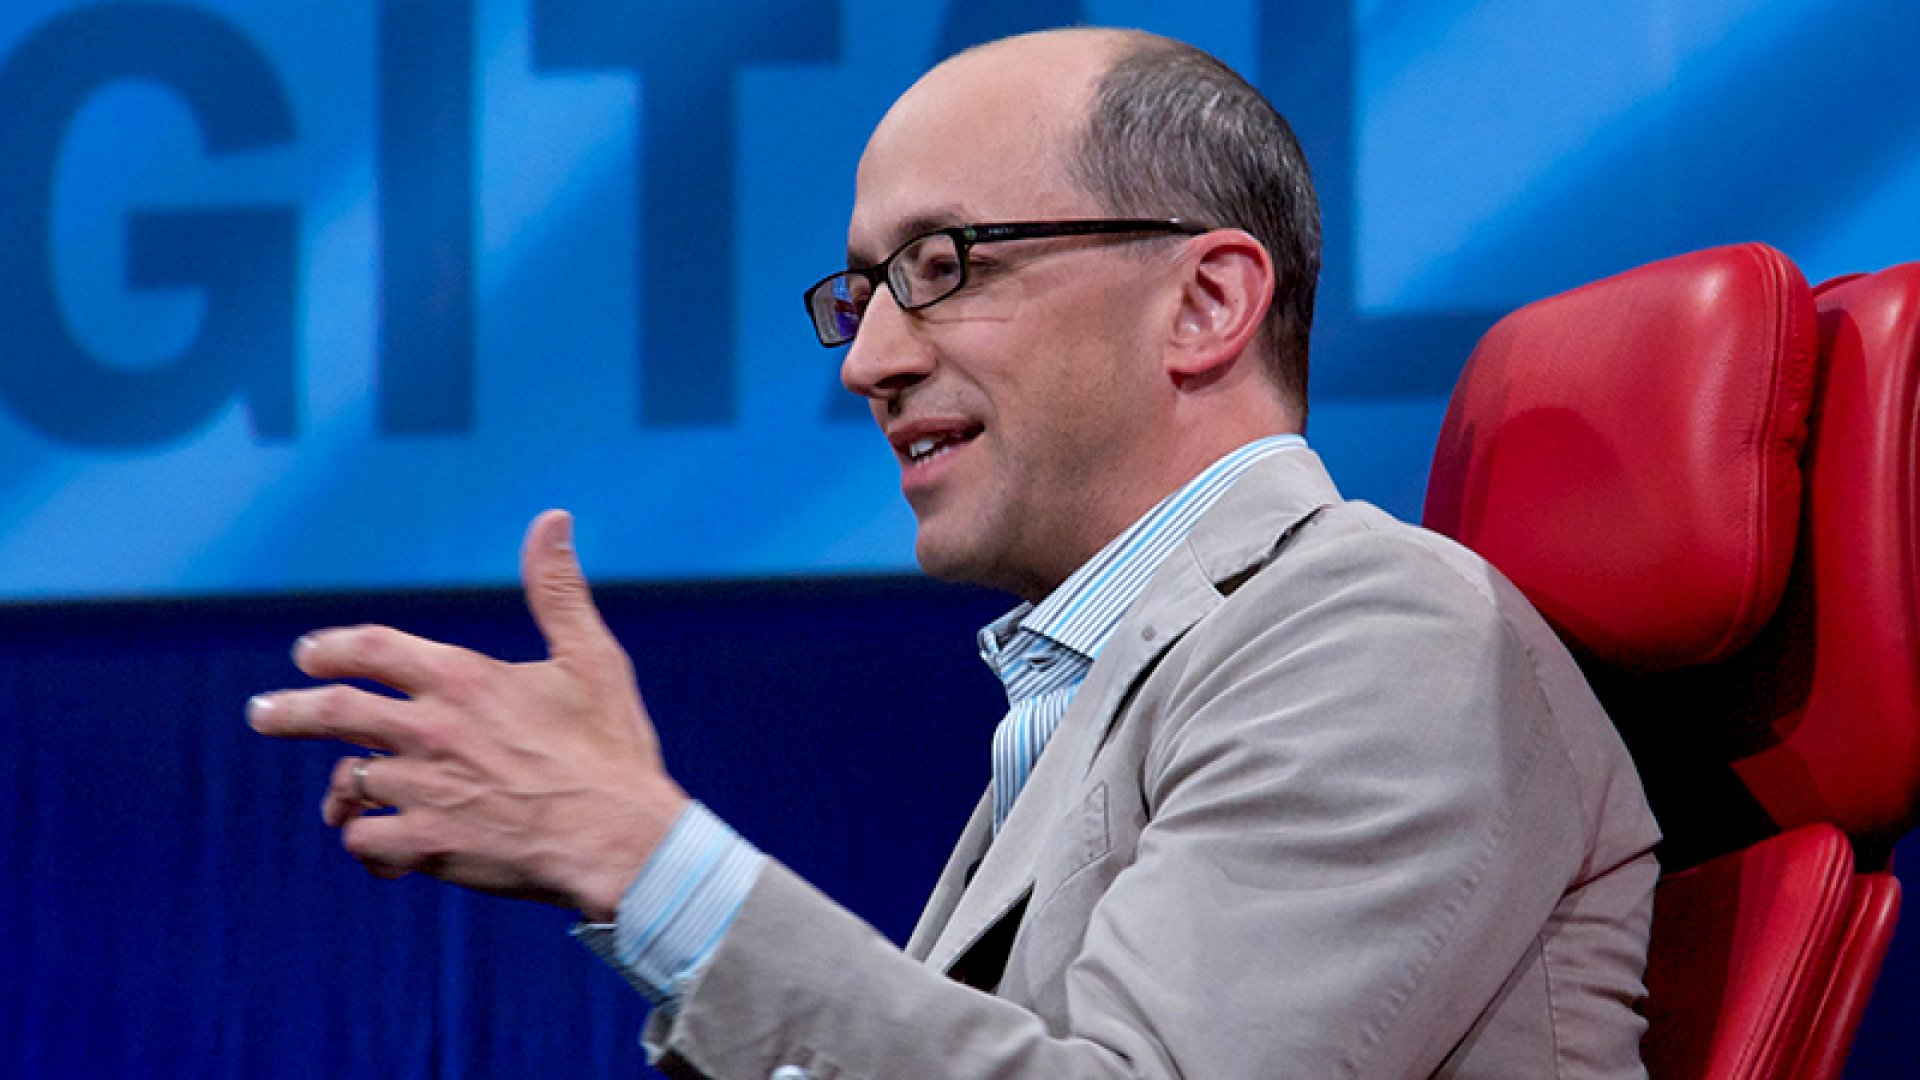 What Happened Inside Twitter That Led To The COO Leaving The Company